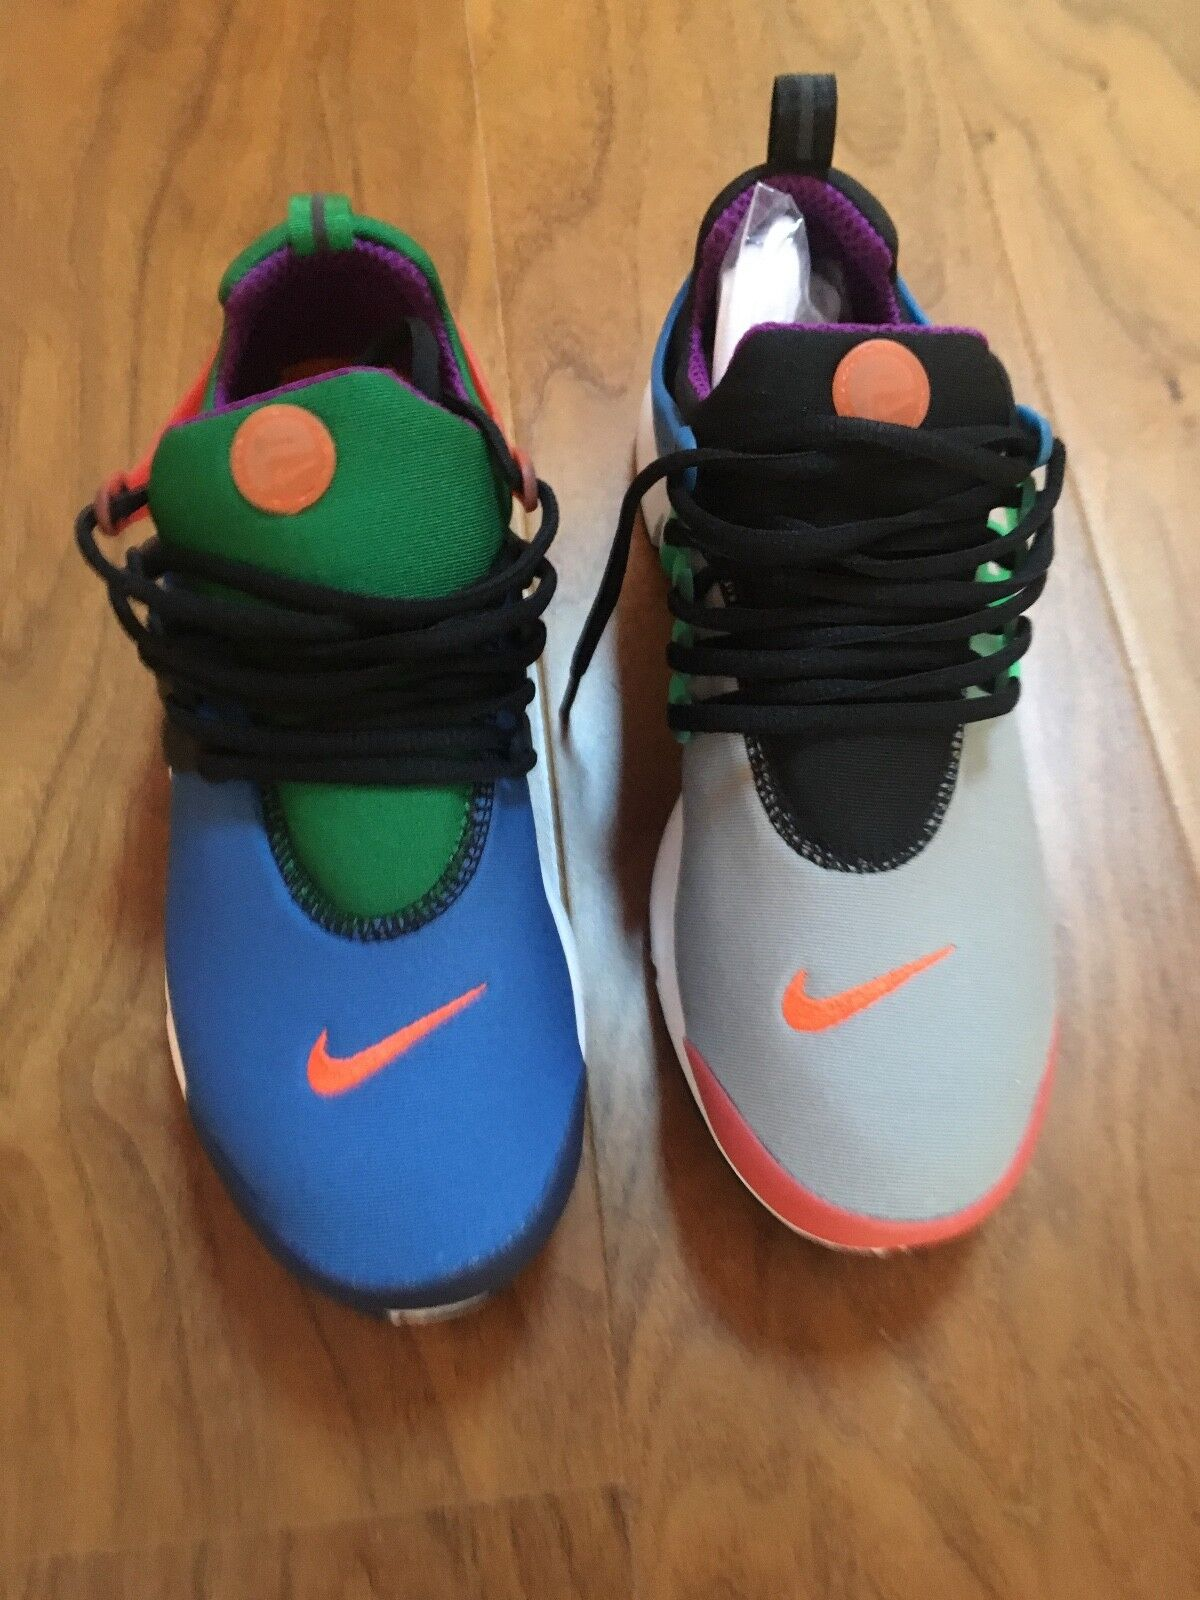 NIKE AIR PRESTO GREEDY QS ULTRA RARE SPECIAL EDITION SOLD OUT EVERYWHERE